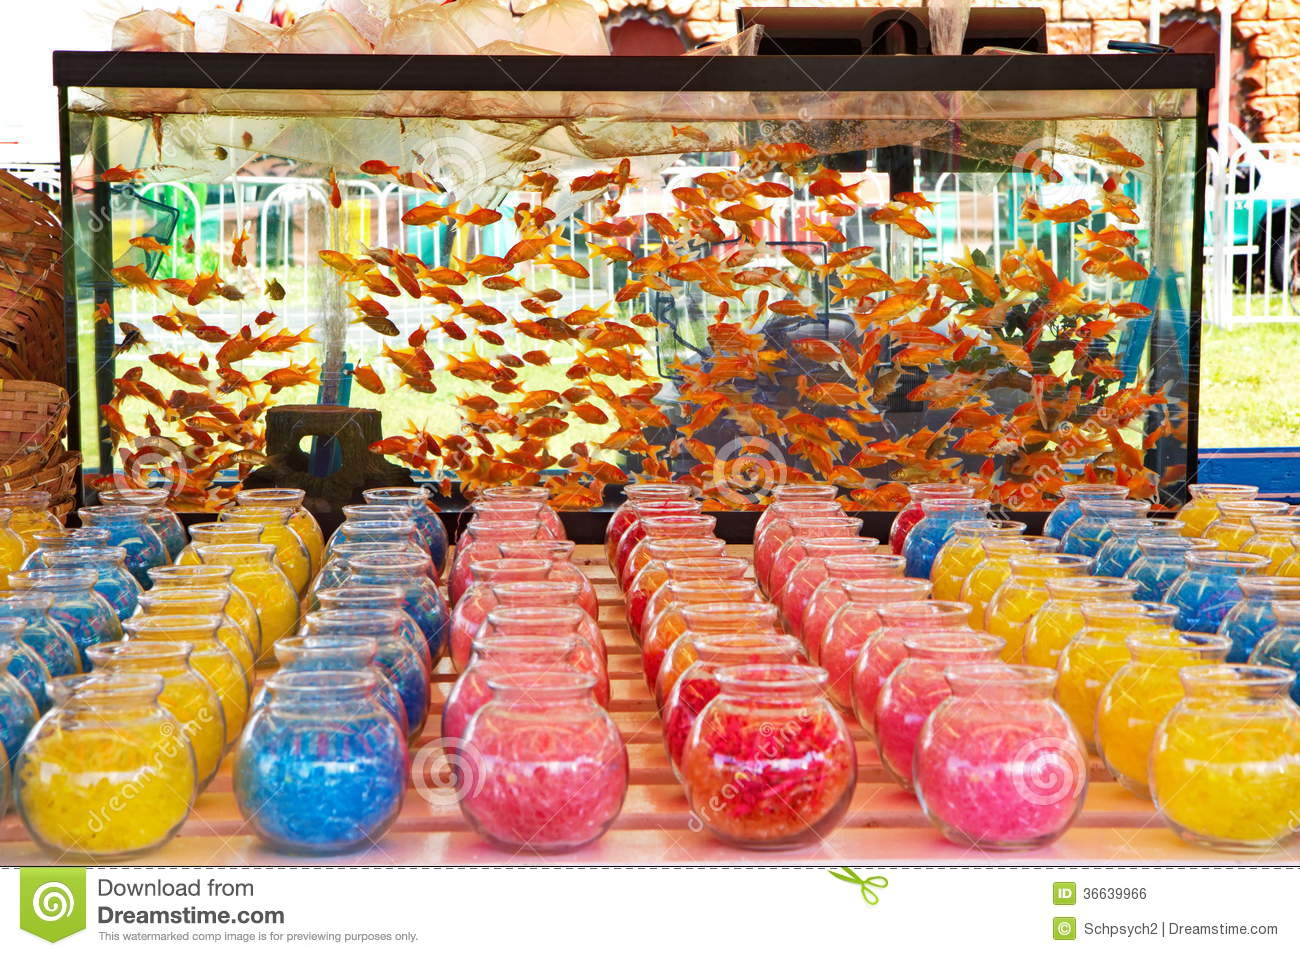 Goldfish game at a carnival fair stock photo image 36639966 for Gold fish game